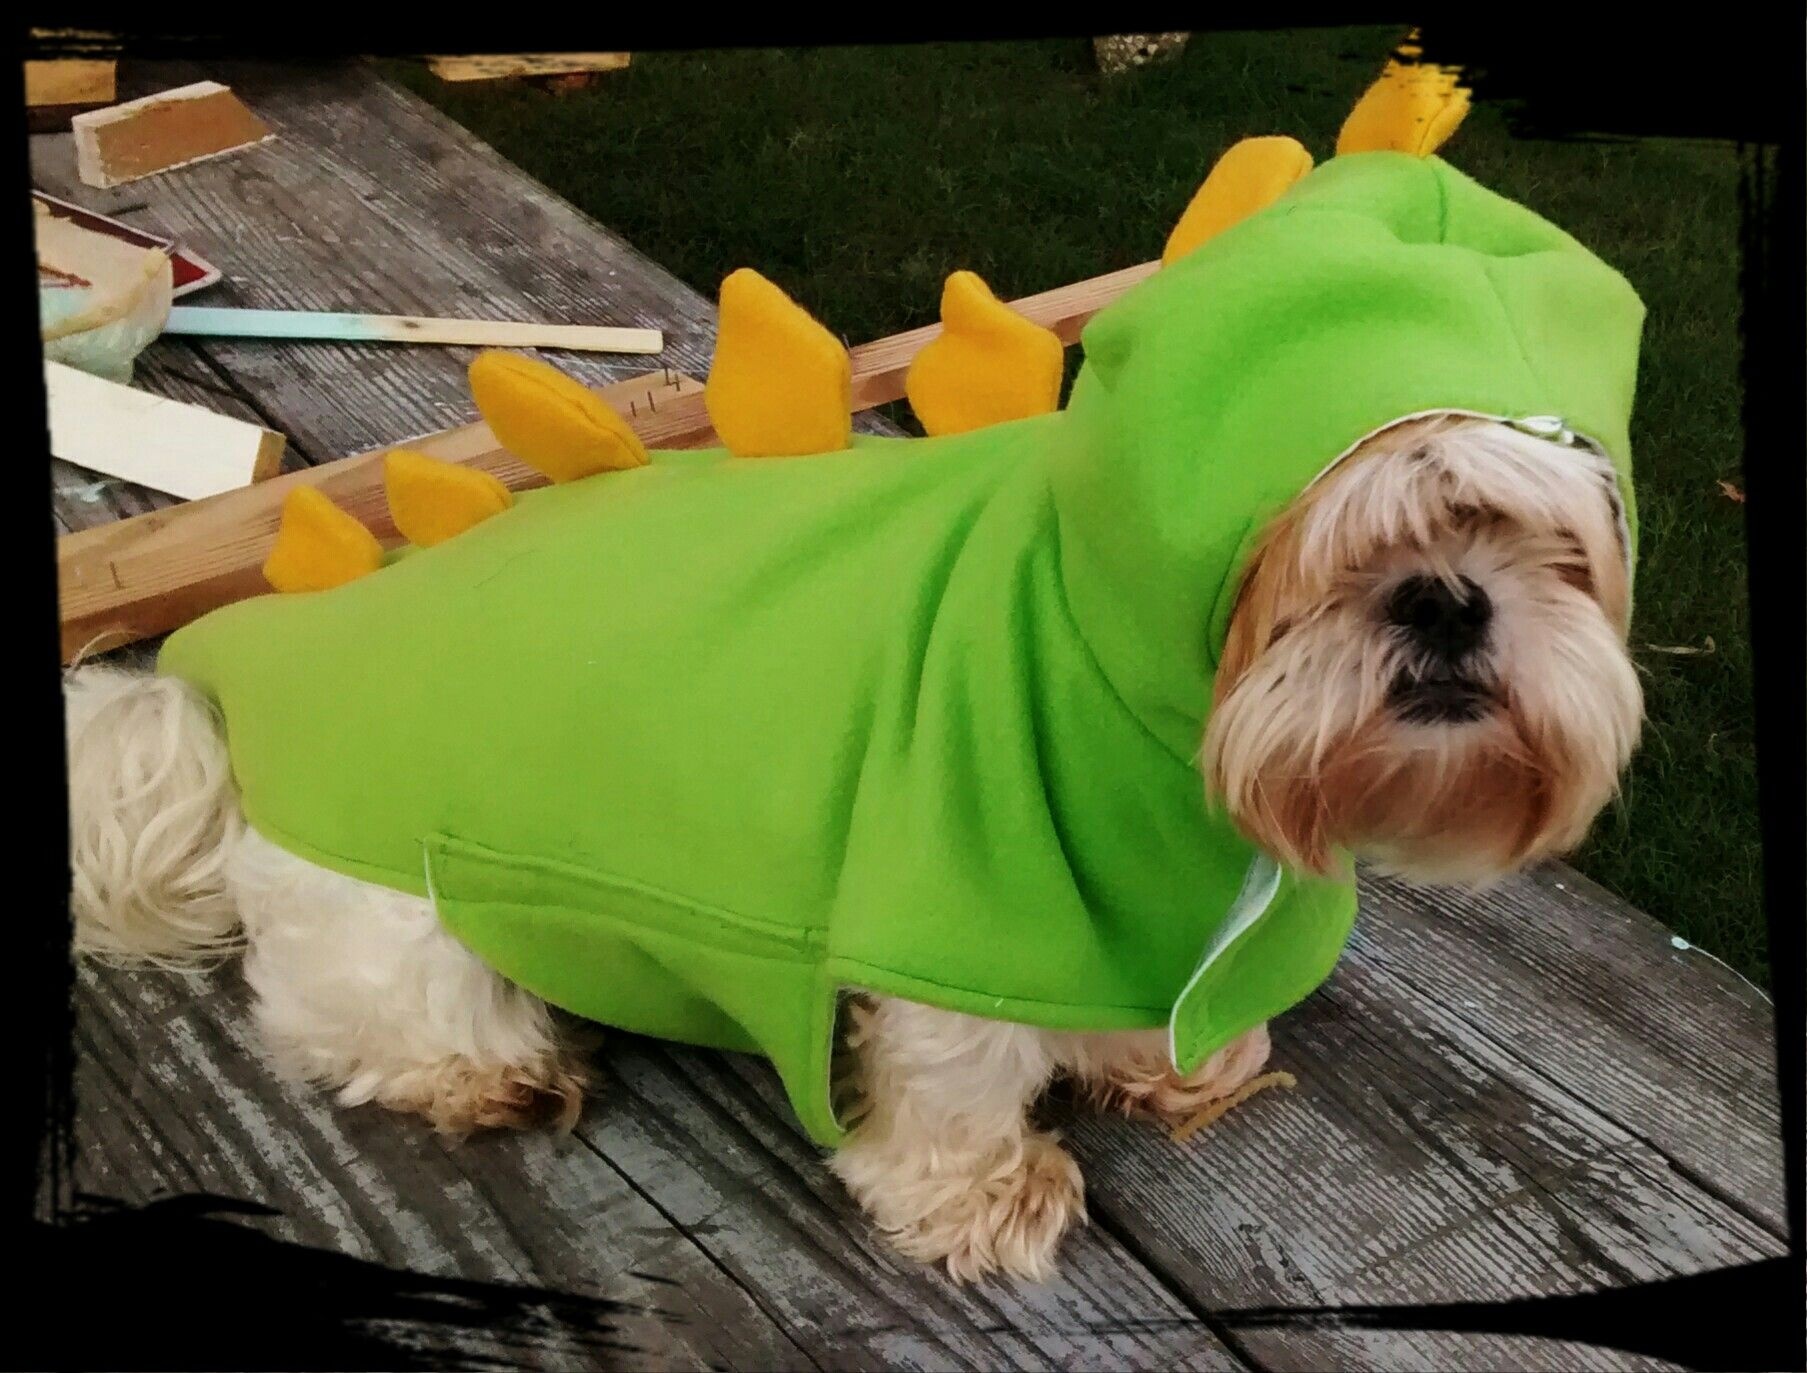 What a cutie! This is Chigger as a dinosaur! Mommy's name is Tina Wilson and they want to try ZYMOX Shampoo because this little dinosaur has sensitive skin!